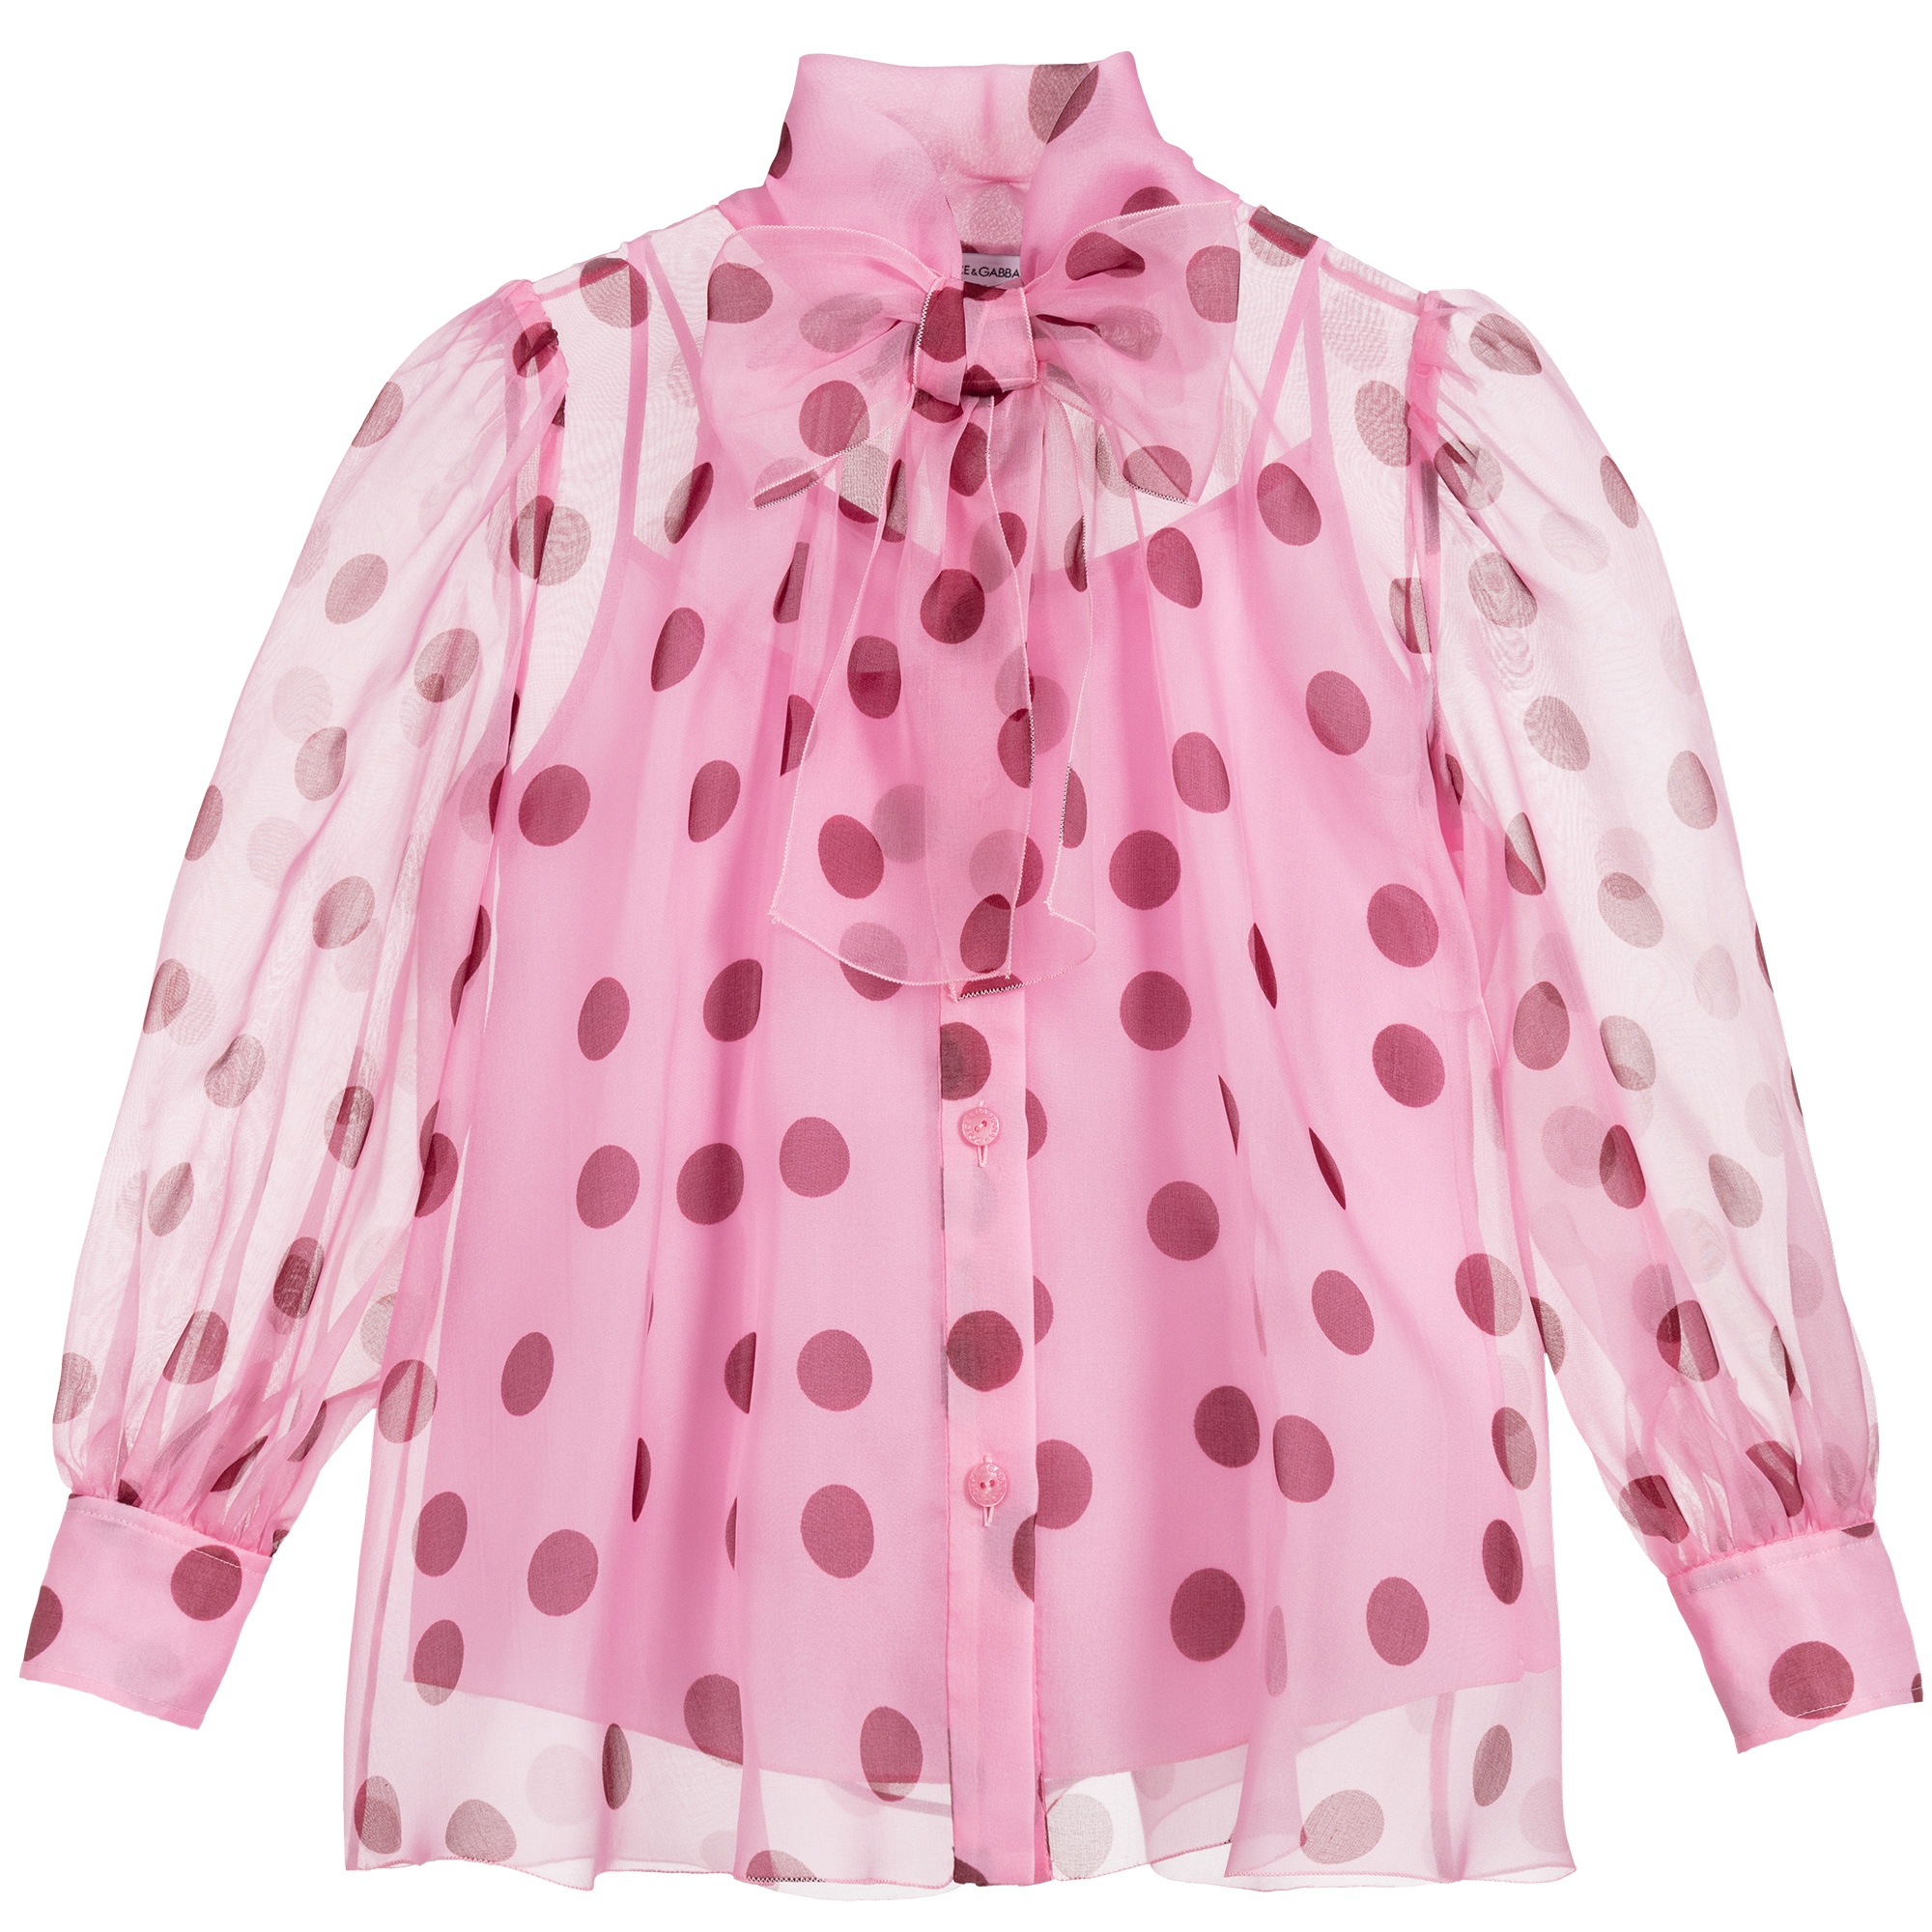 Pink Polka Dot Organza Top